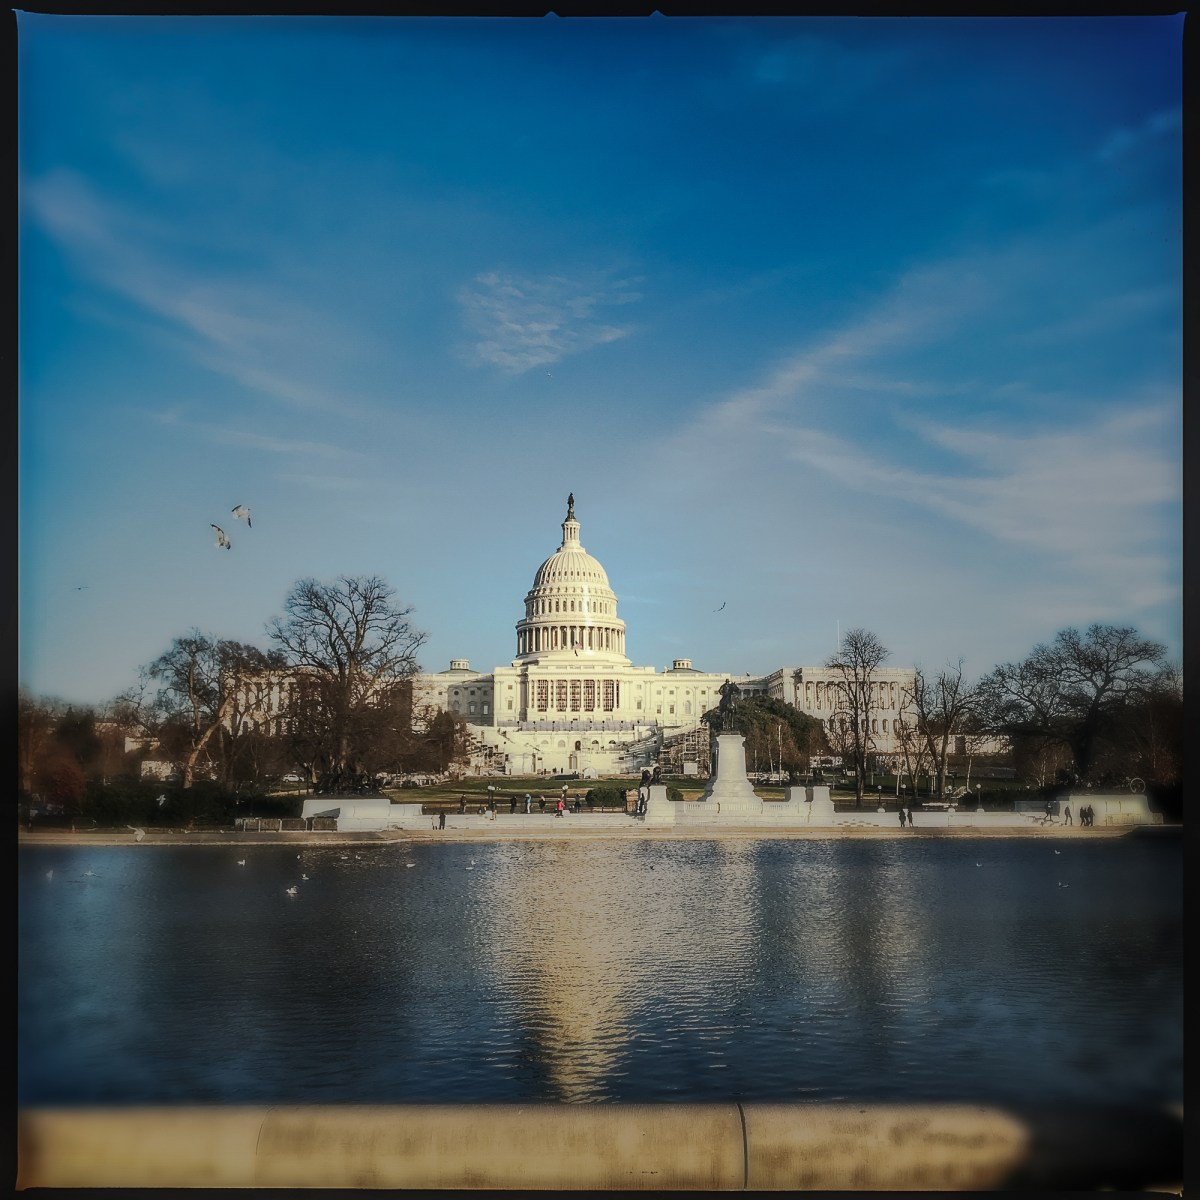 the Capitol seen from across the reflecting pool